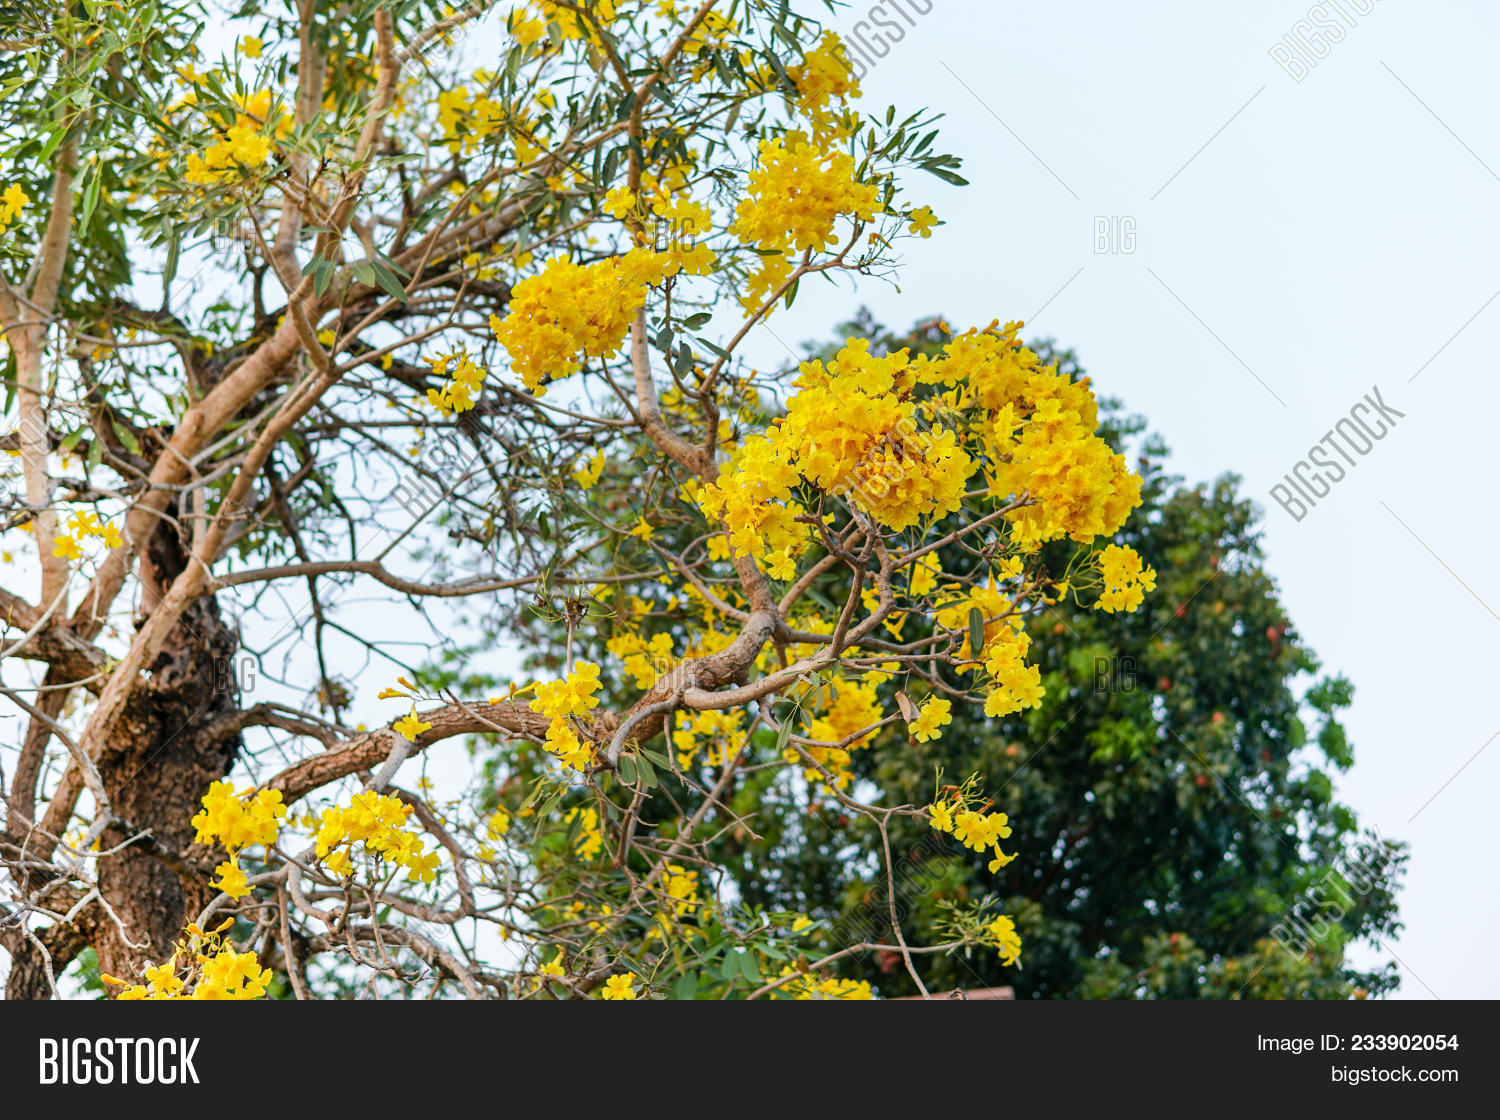 Yellow flowertabebuia image photo free trial bigstock the yellow flowertabebuia argentea britt or silver trumpet flower tree of gold or mightylinksfo